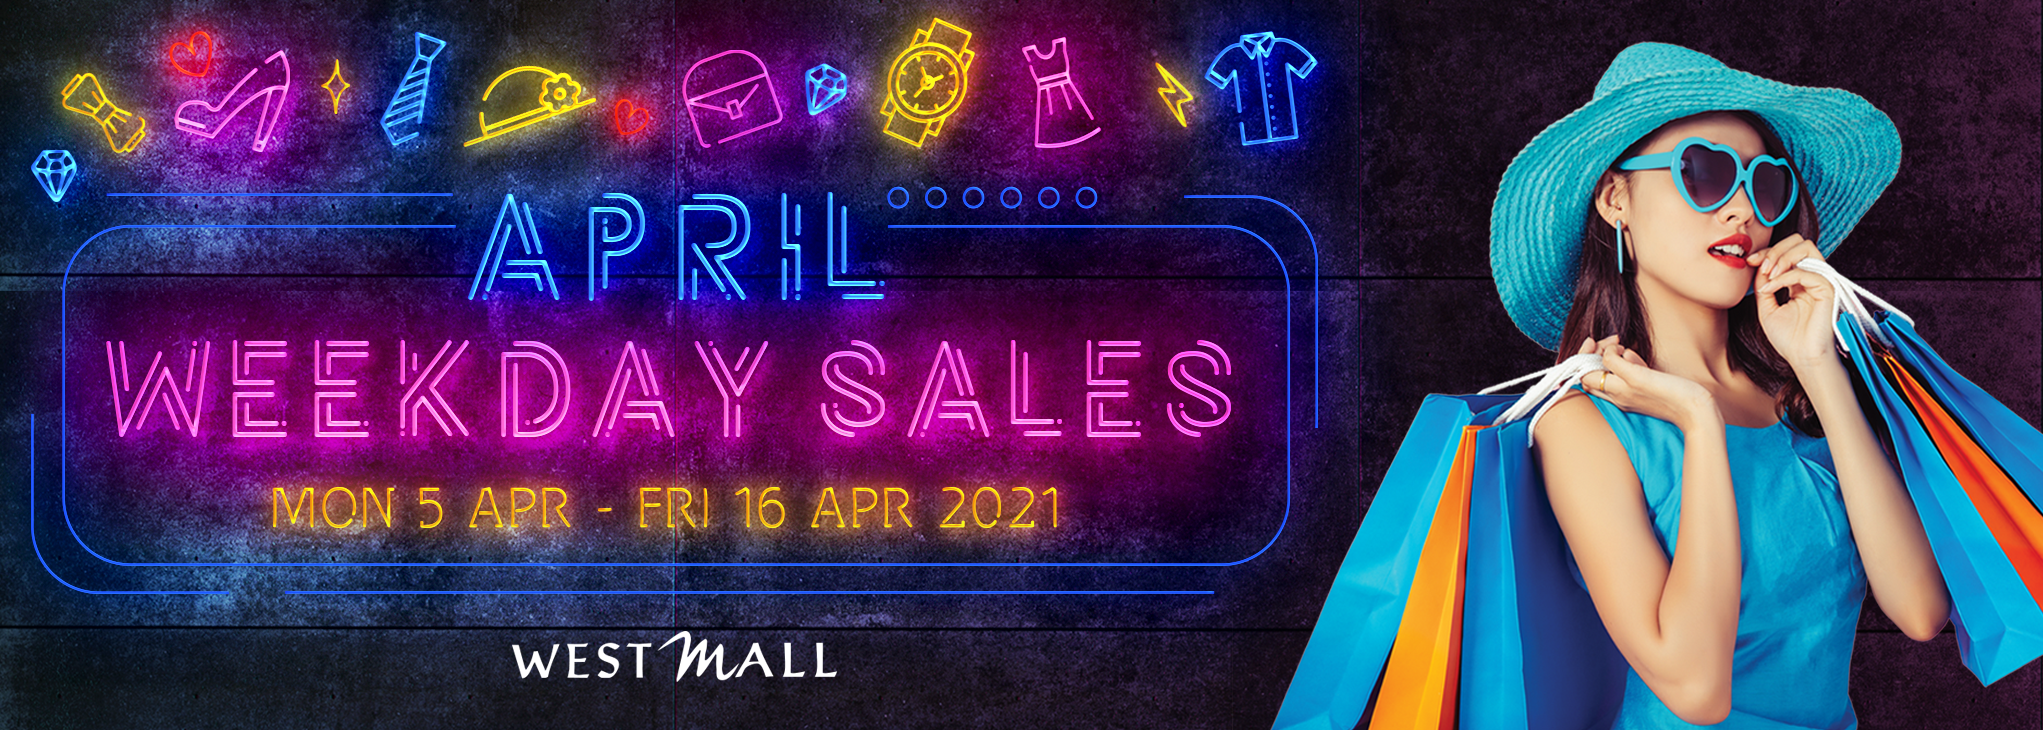 April Weekday Sales